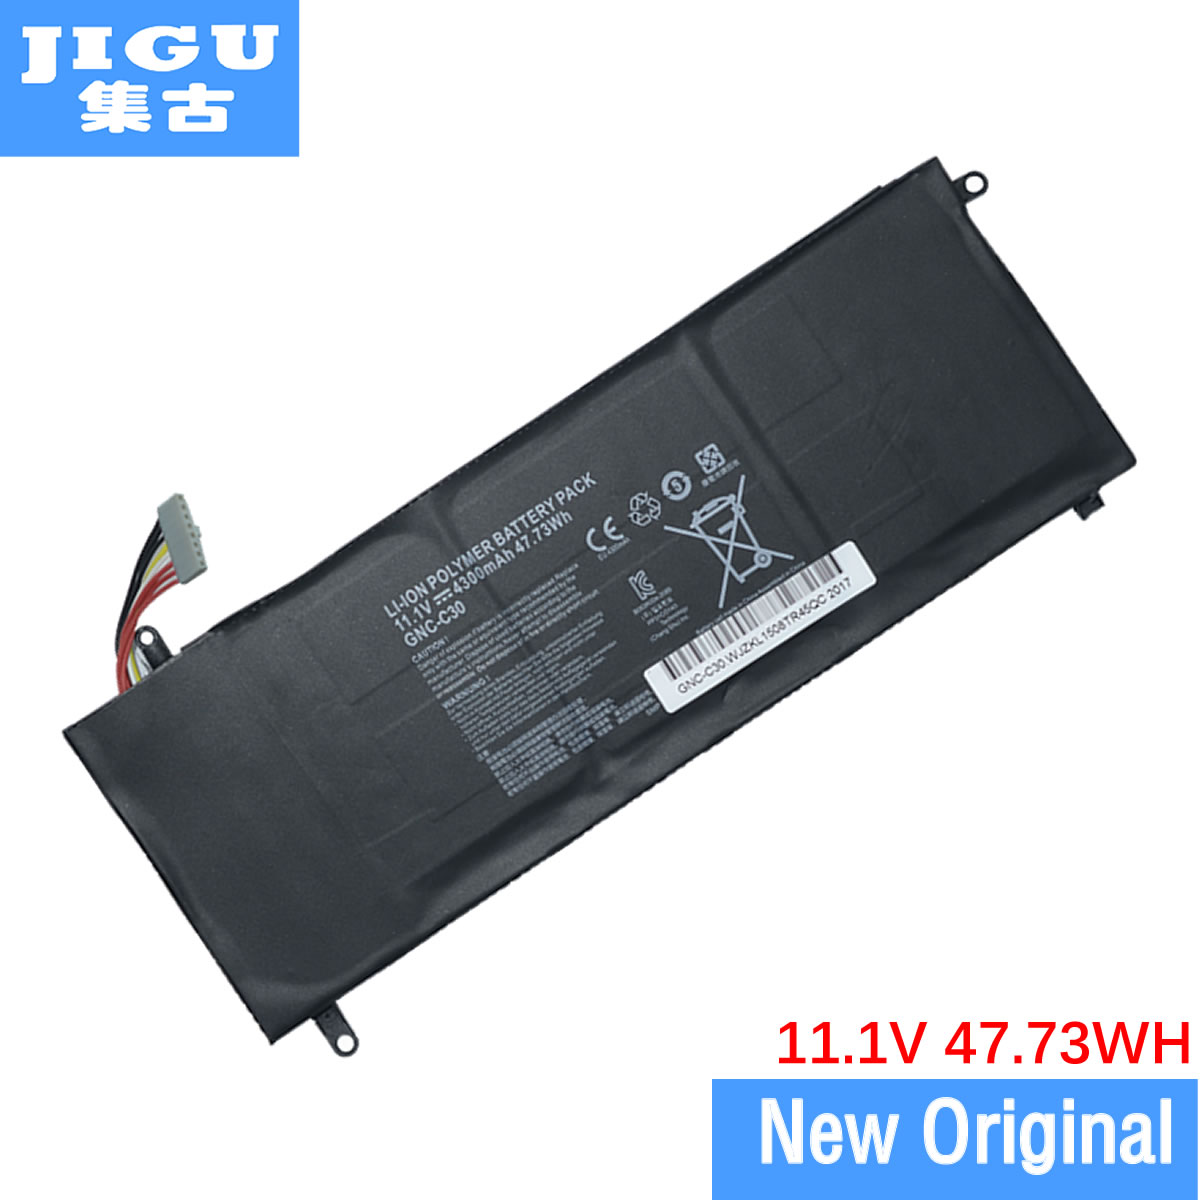 JIGU New 11.1V 4300mAh 47.73Wh Laptop Battery GNC-C30 961TA002F For GIGABYTE U2442 U24F P34G V2 High Quality цены онлайн